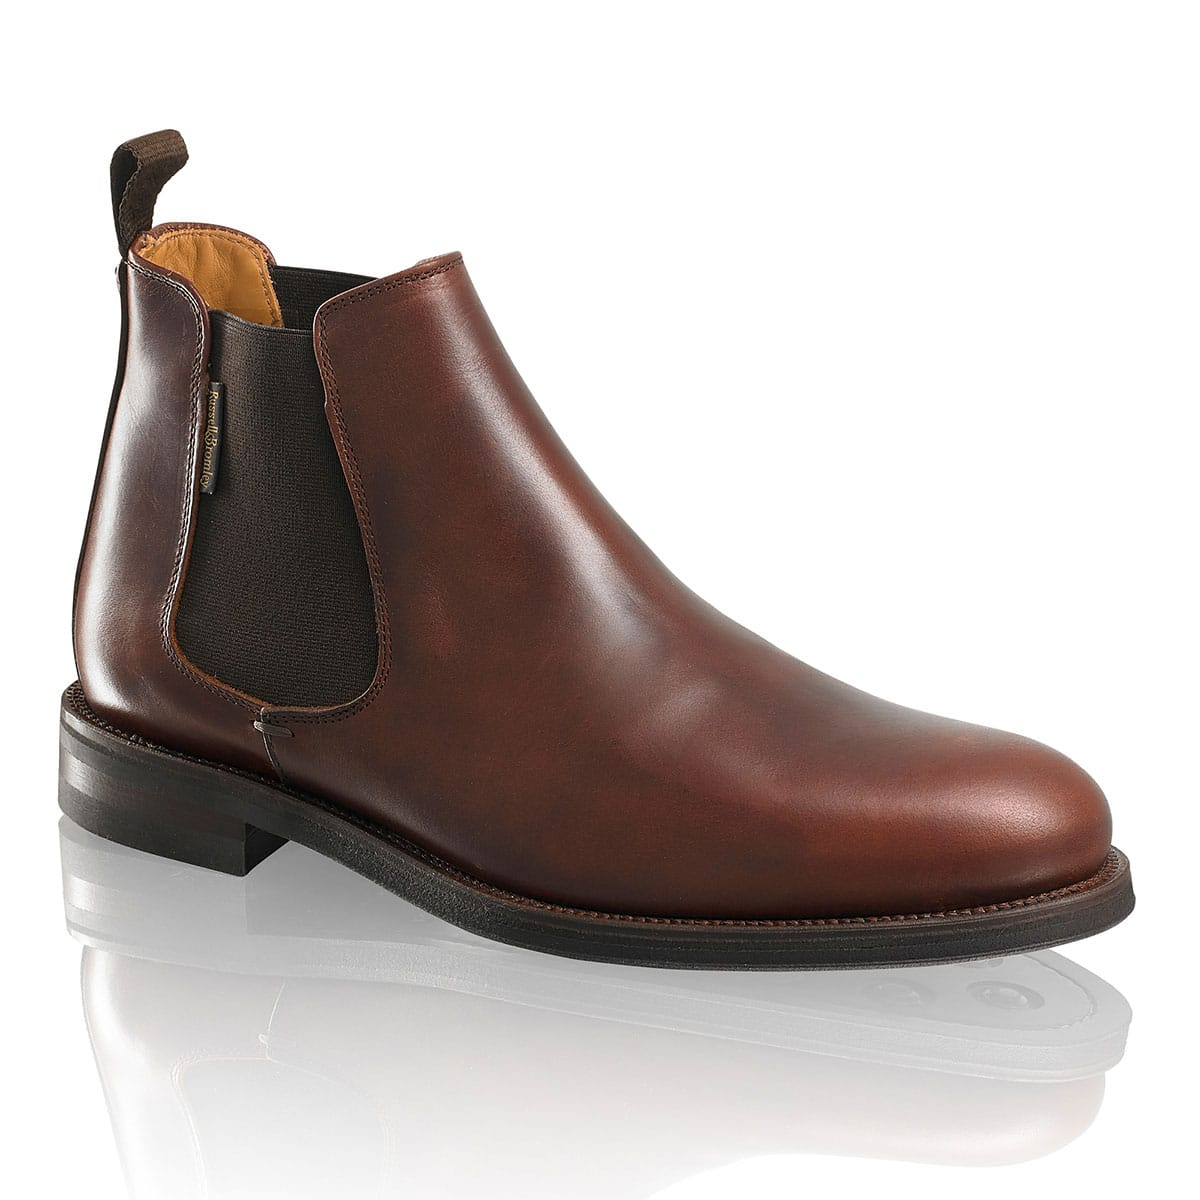 Best Chukka Boots Brands - Tricker's